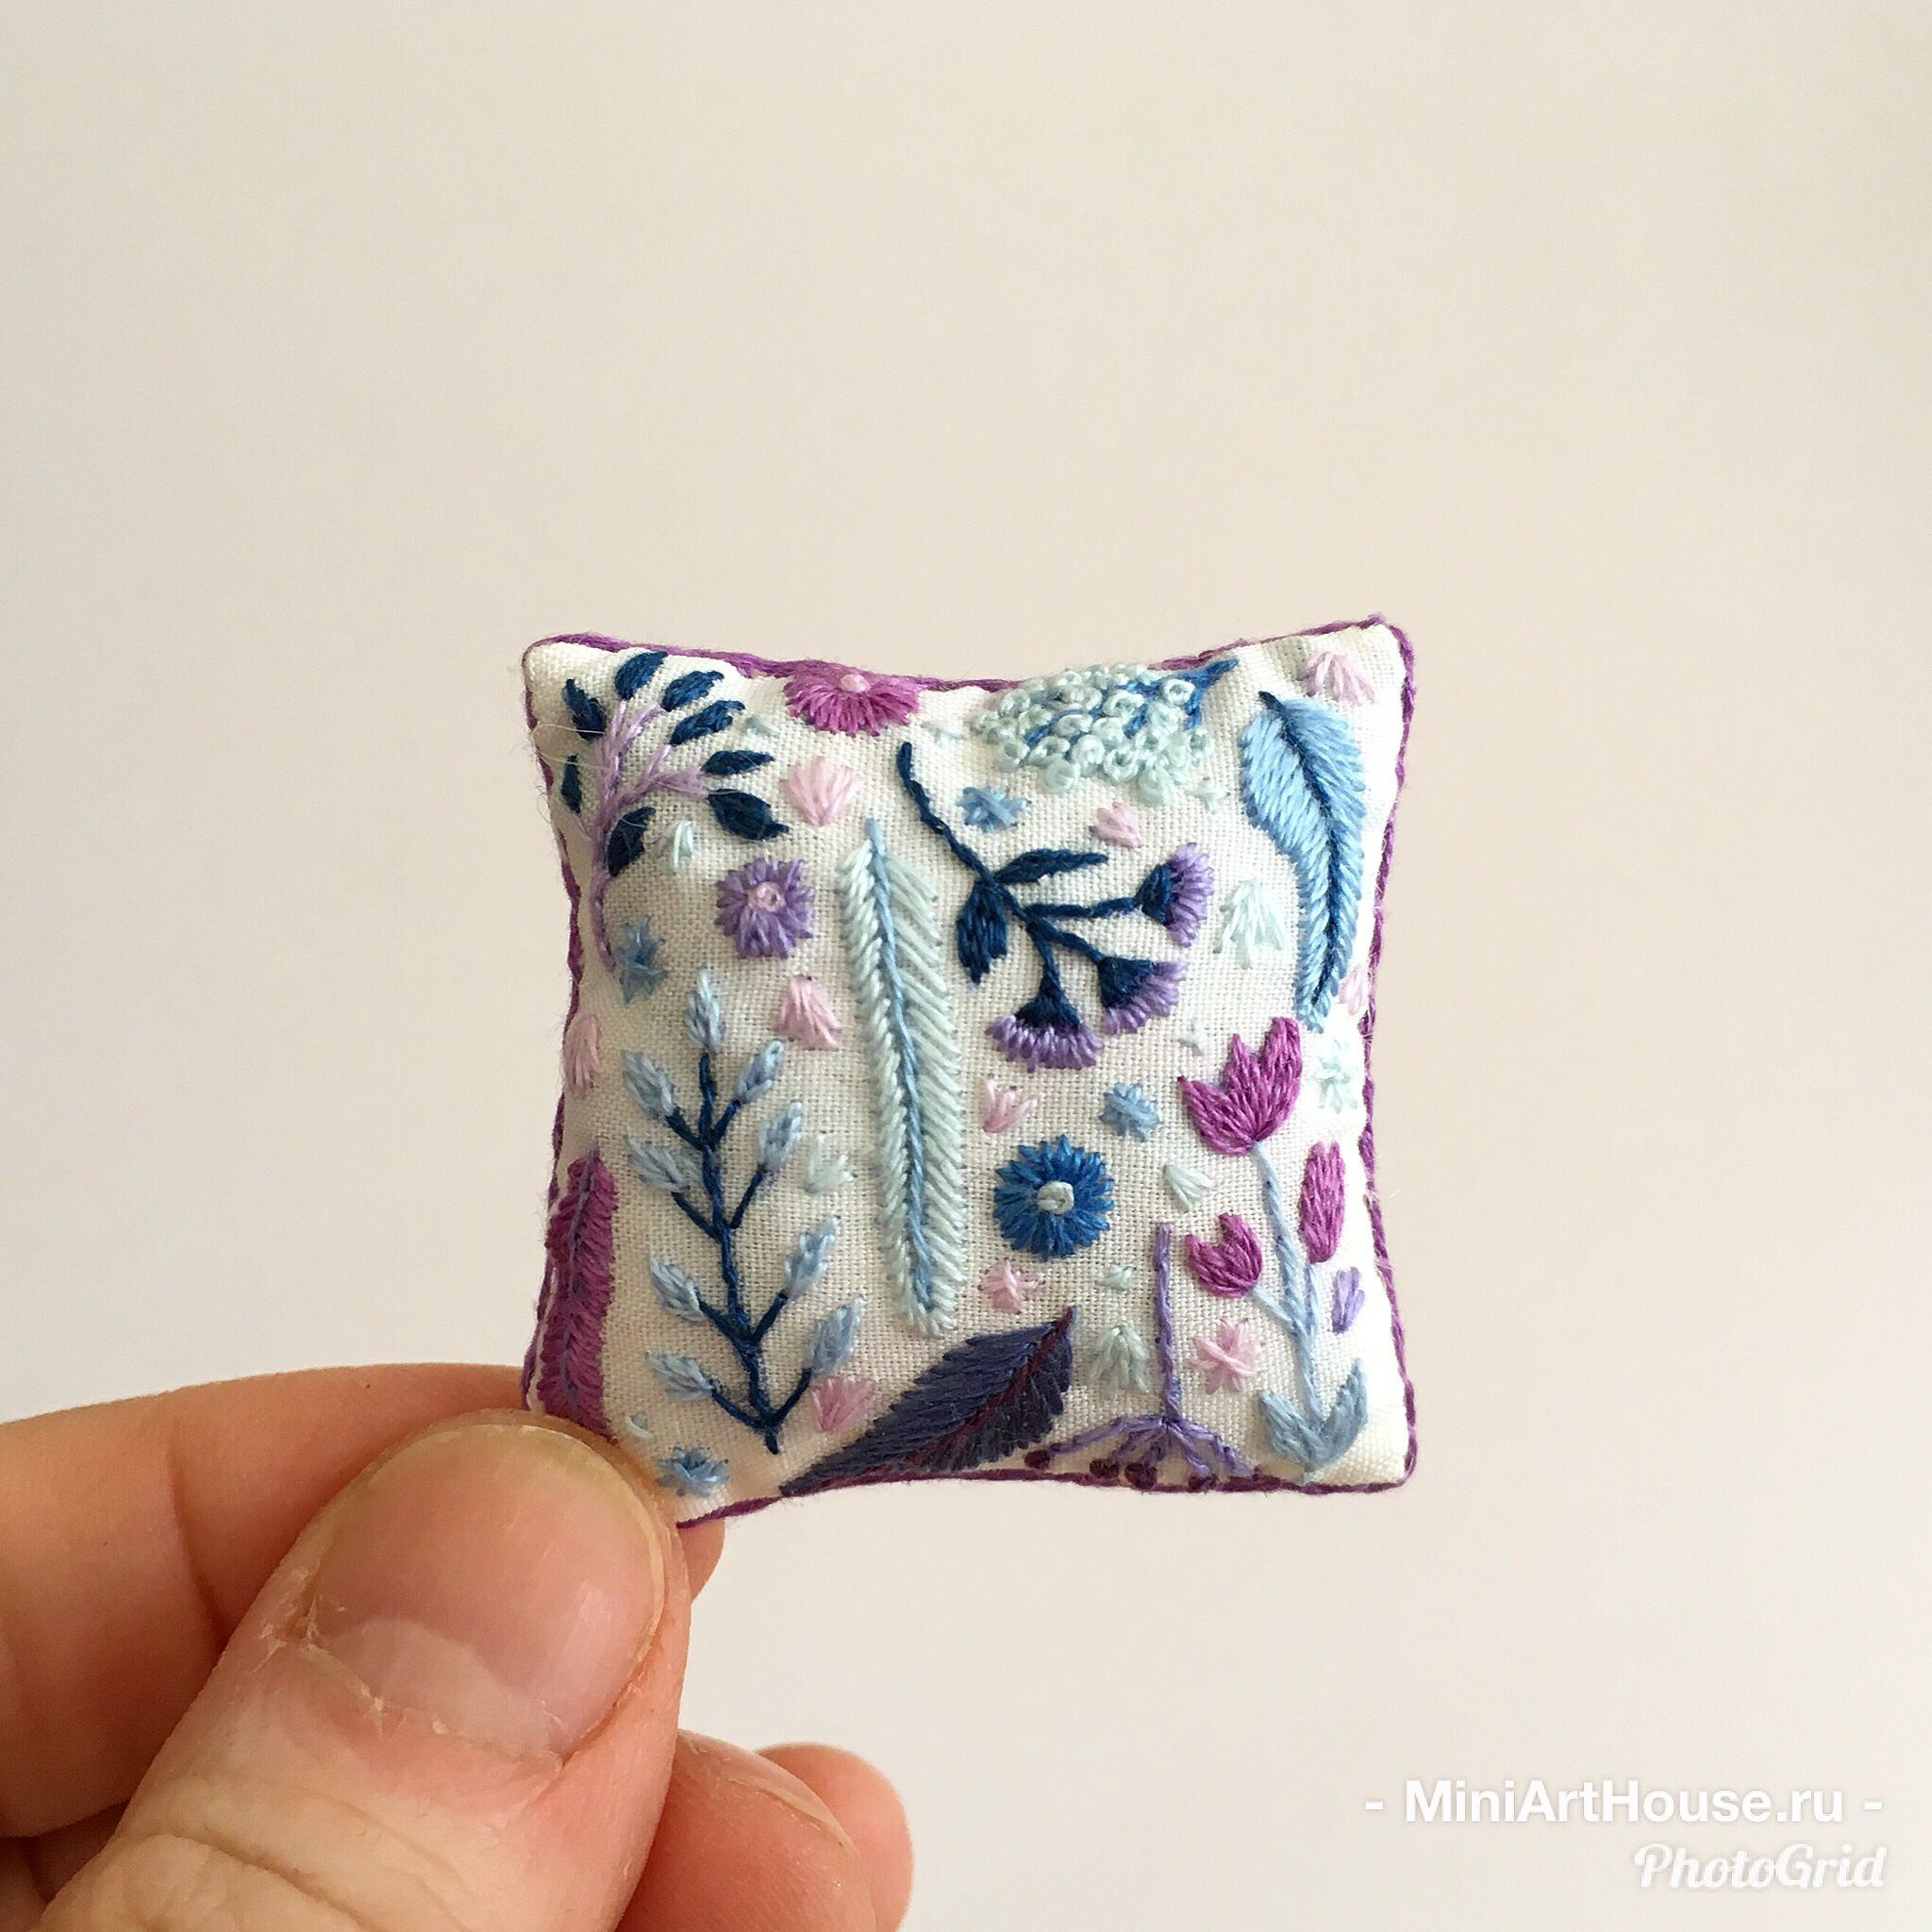 Dollhouse miniature pillow hand embroidery made by miniarthouse